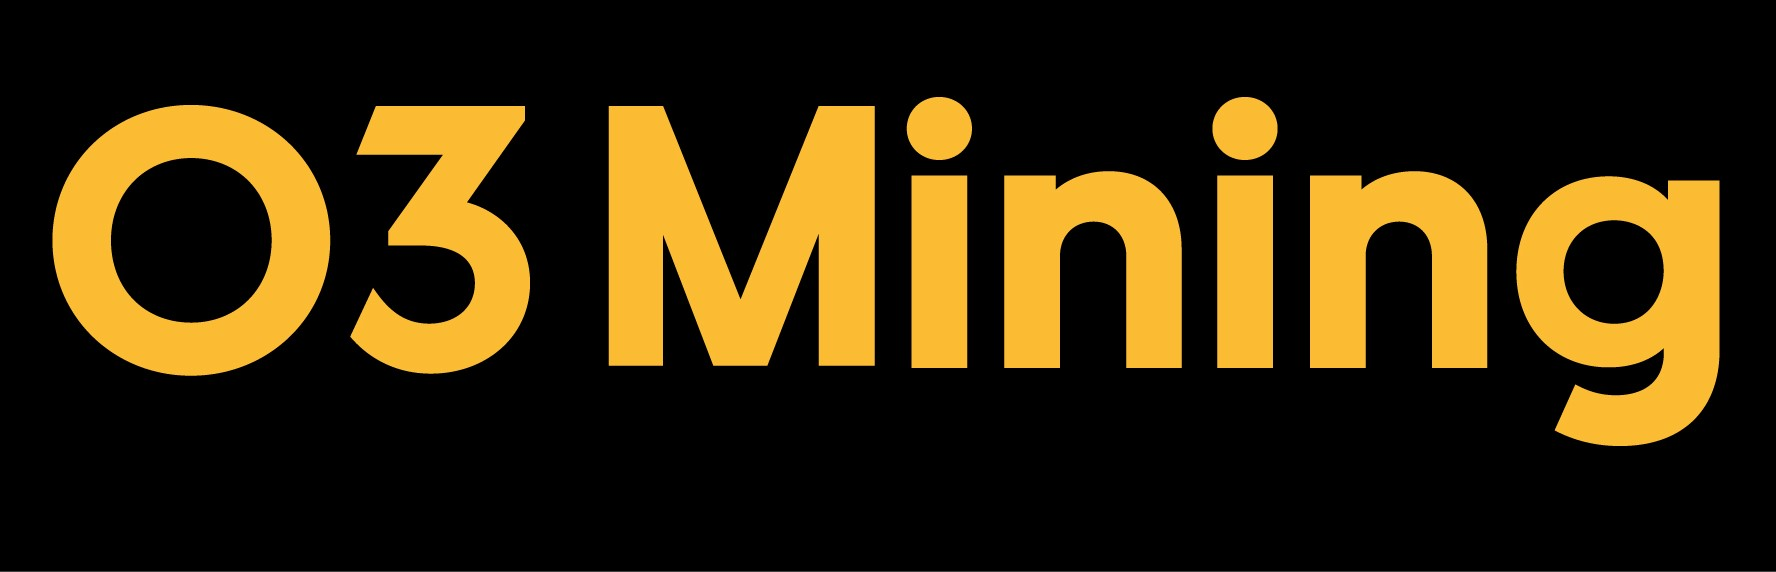 O3 Mining Completes Acquisition of Mining Claims From Kinross Gold